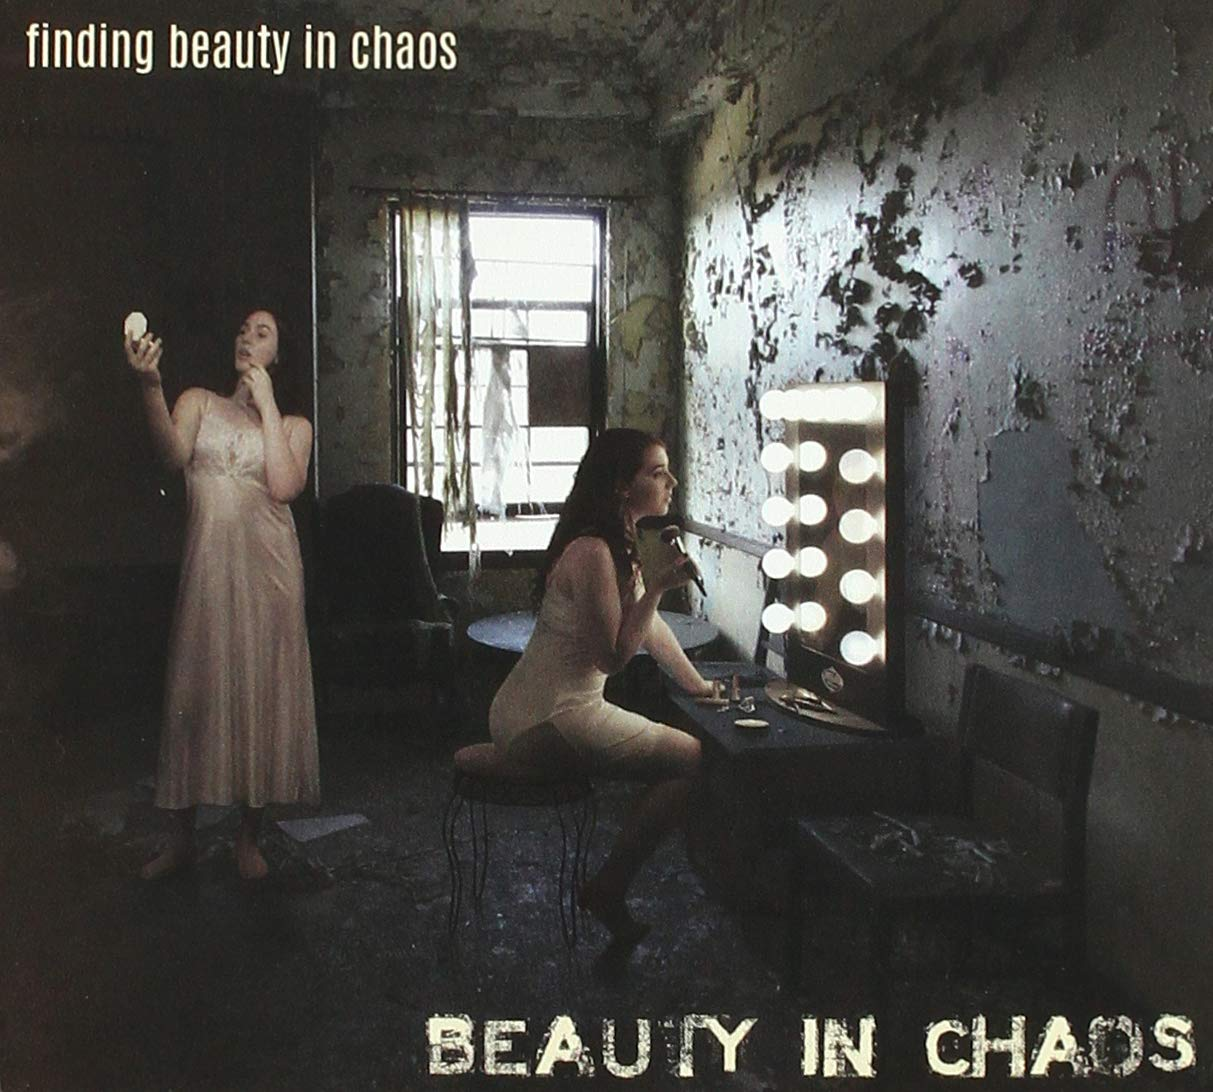 Finding Beauty New life Chaos Limited time trial price In